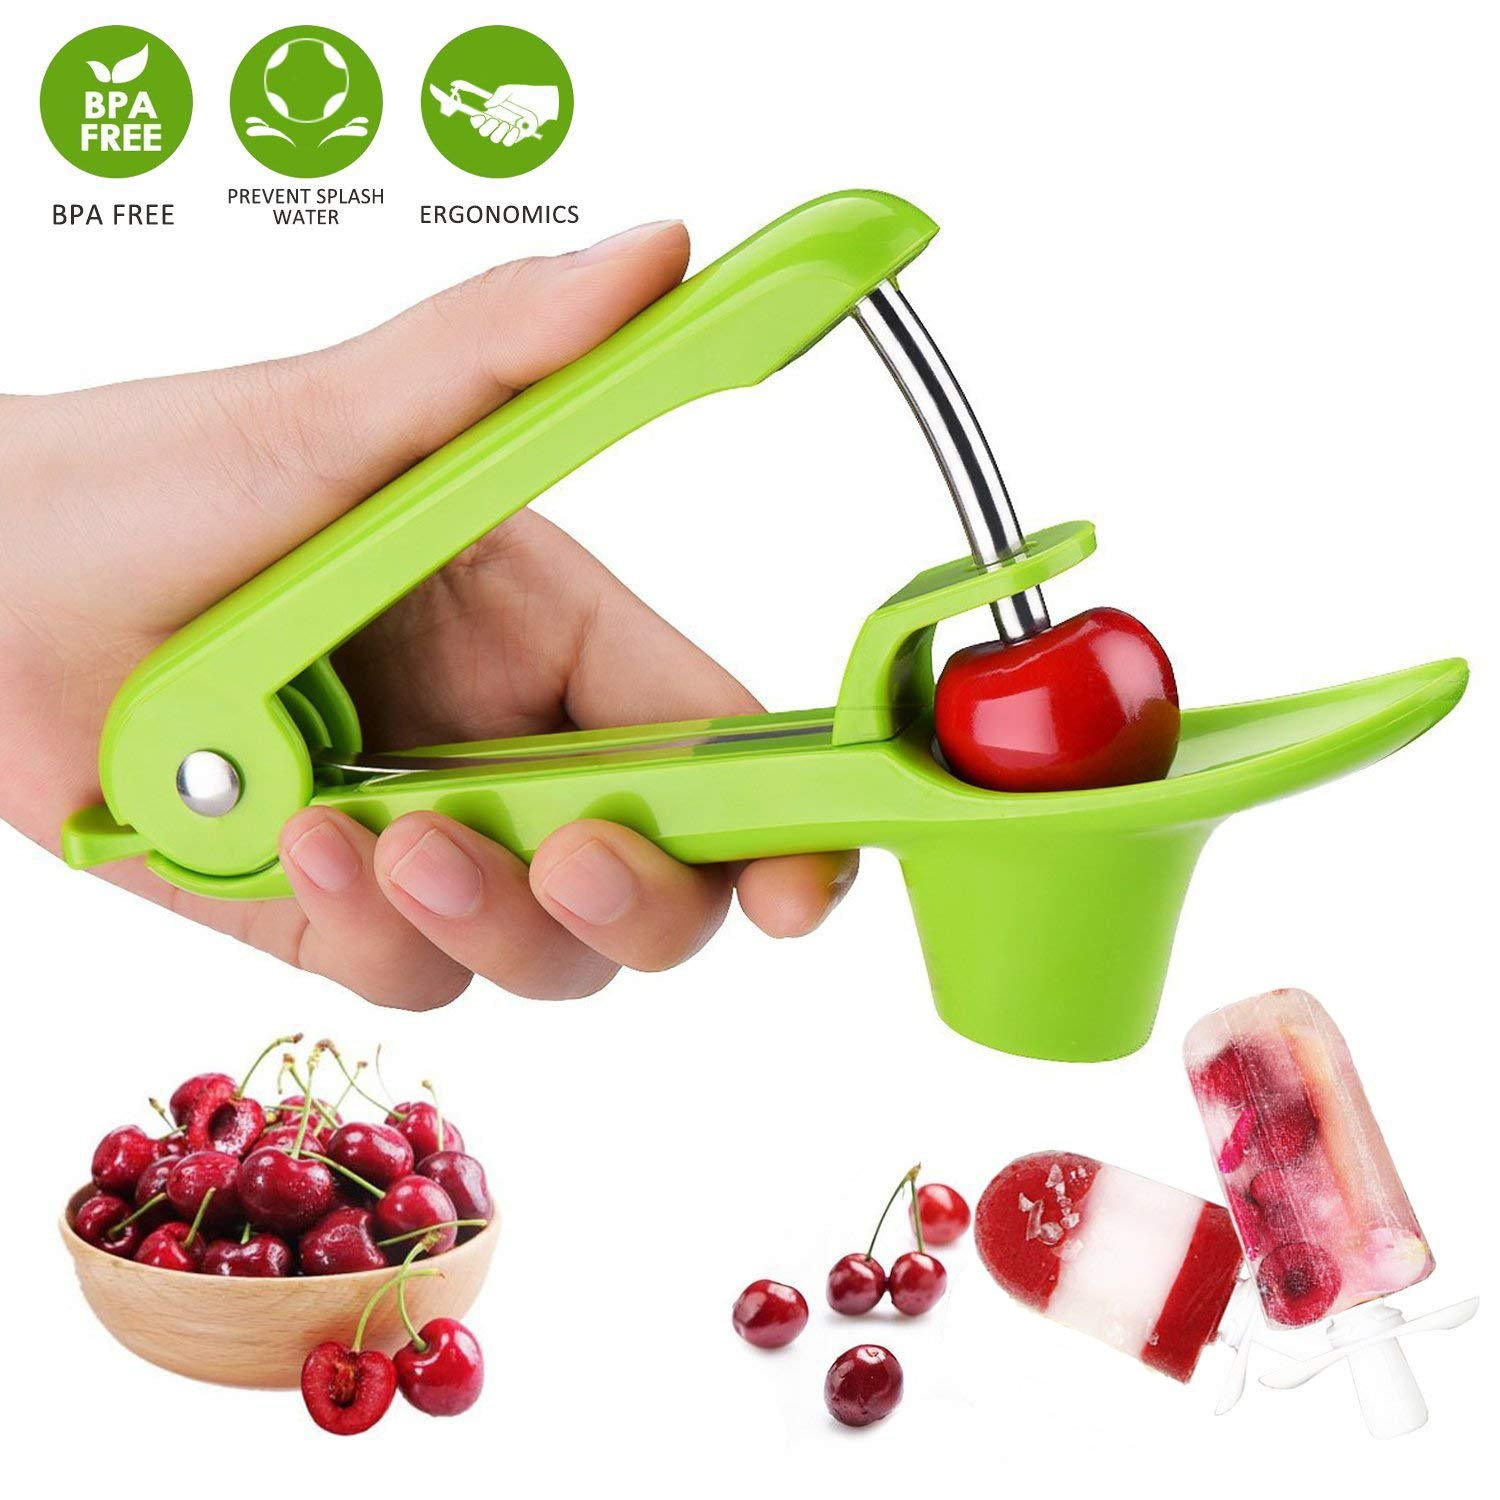 Cherry Pitter Food Grade Soft Silicone Holder Quickly Single-Handed Remove Cherries Seeds Kitchen Gadgets by Jeracol UKJE180413HGE001